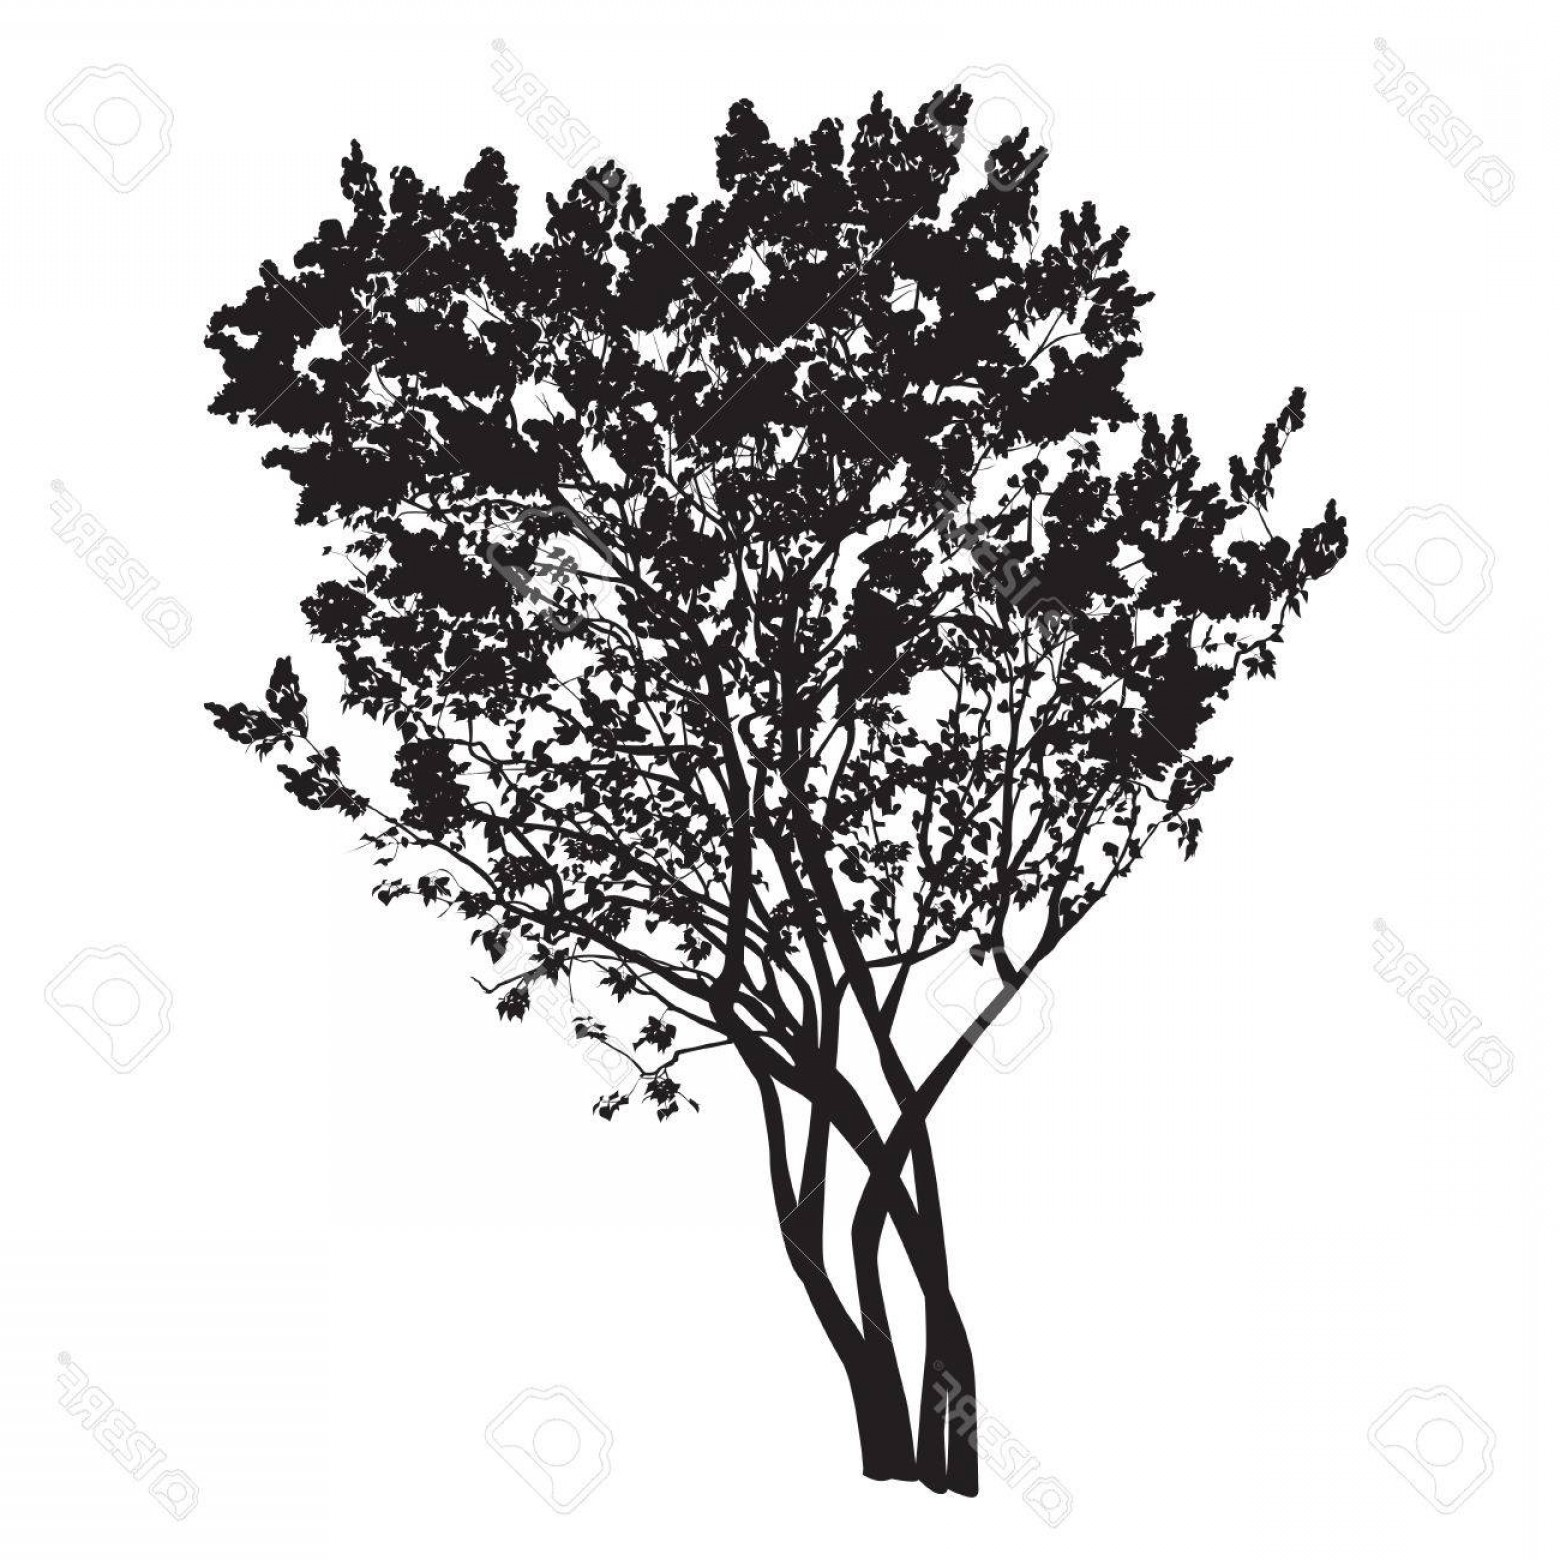 Spring Vector Silhouette: Photostock Vector Silhouette Of A Bush Of The Blossoming Lilac In The Spring In The Vector Image On A White Background